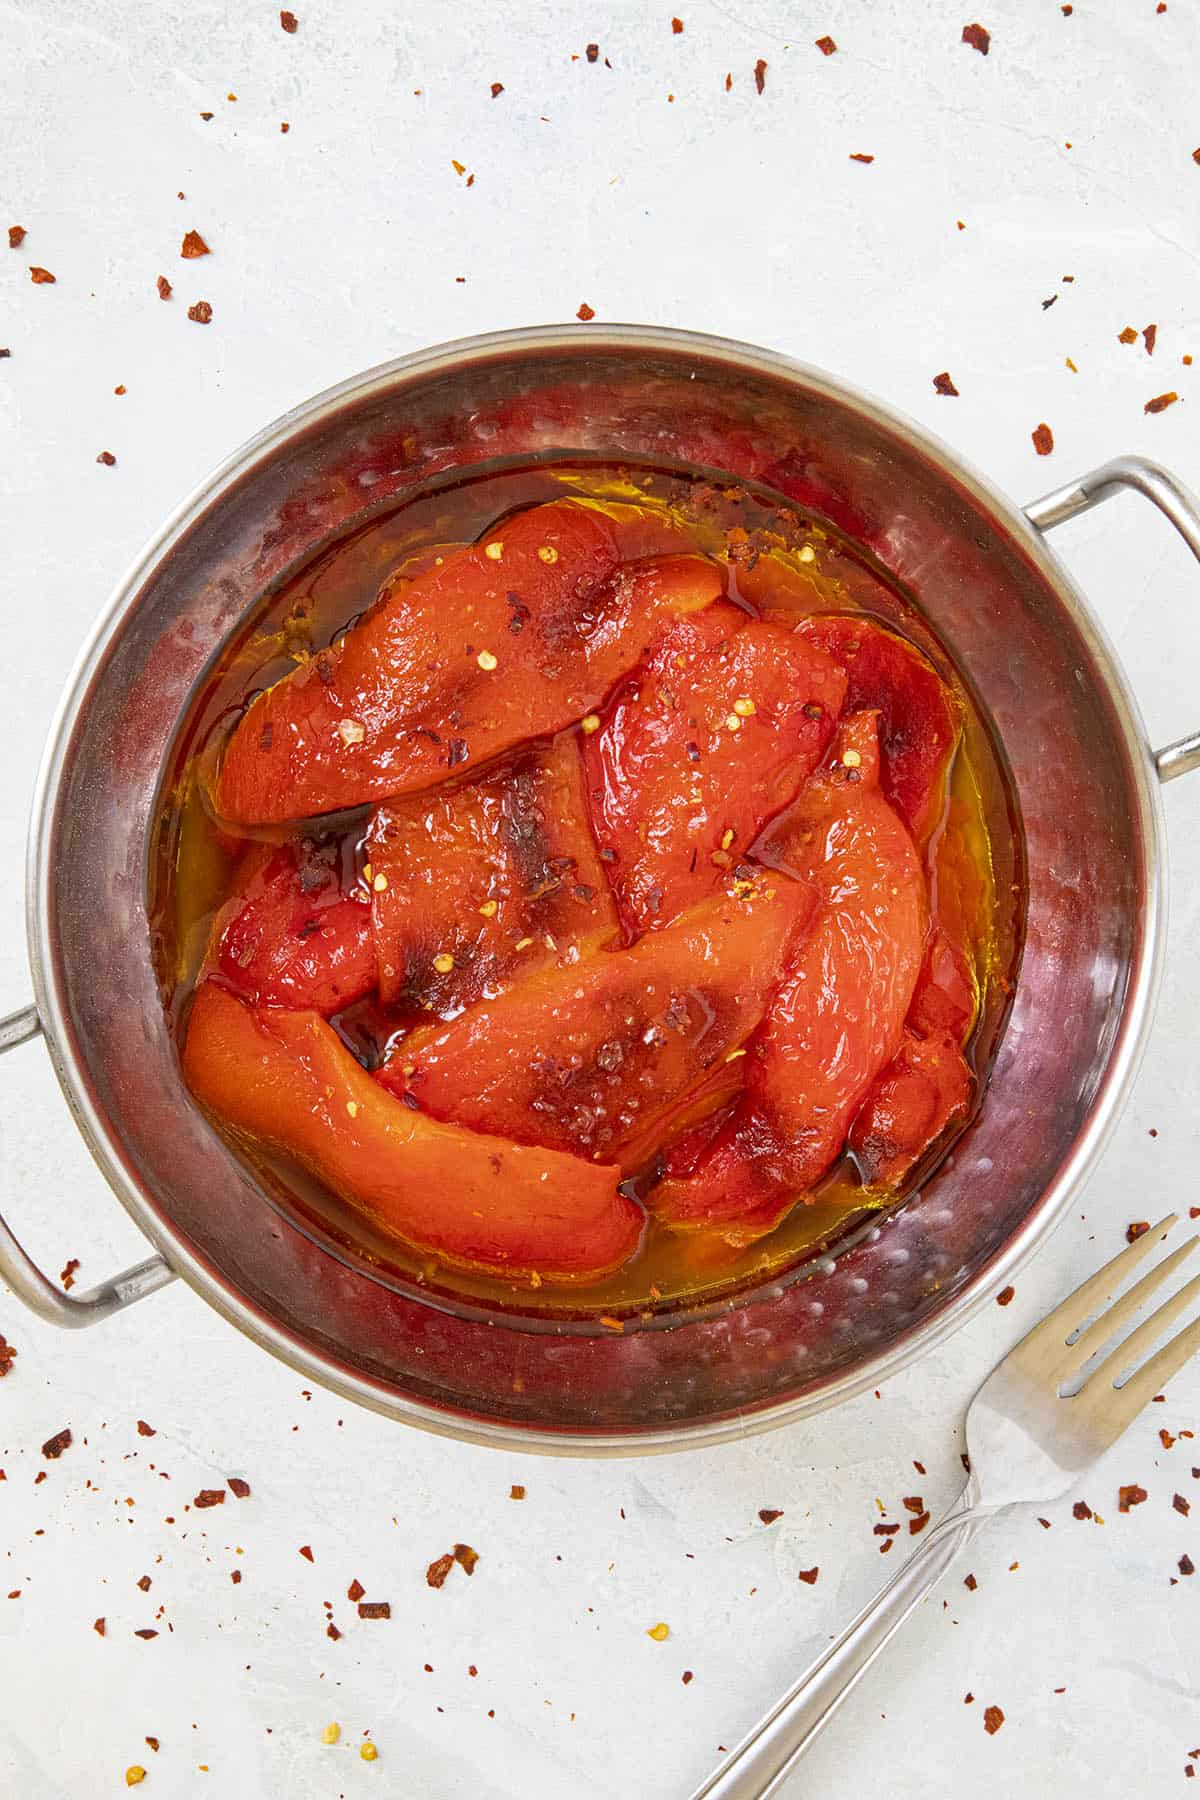 Roasted Red Peppers in a bowl with lots of olive oil, sprinkled with chili flakes